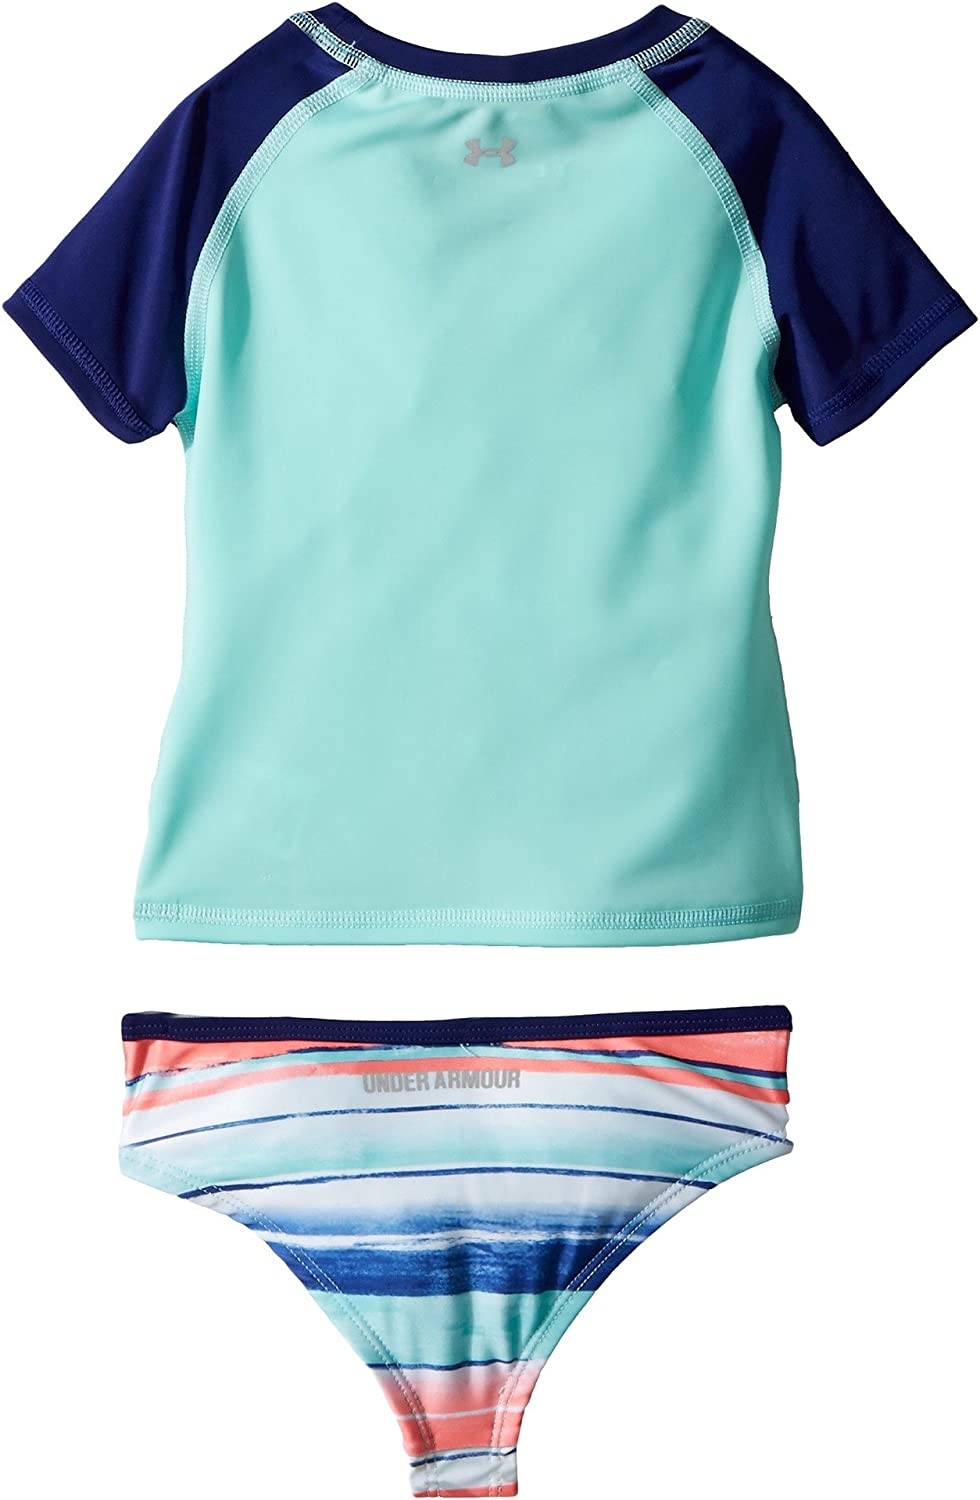 cac579715be Amazon.com: Under Armour Kids Baby Girl's Hybrid Big Logo Rashguard Set  (Toddler) Tropical Tide 2T Toddler: Sports & Outdoors